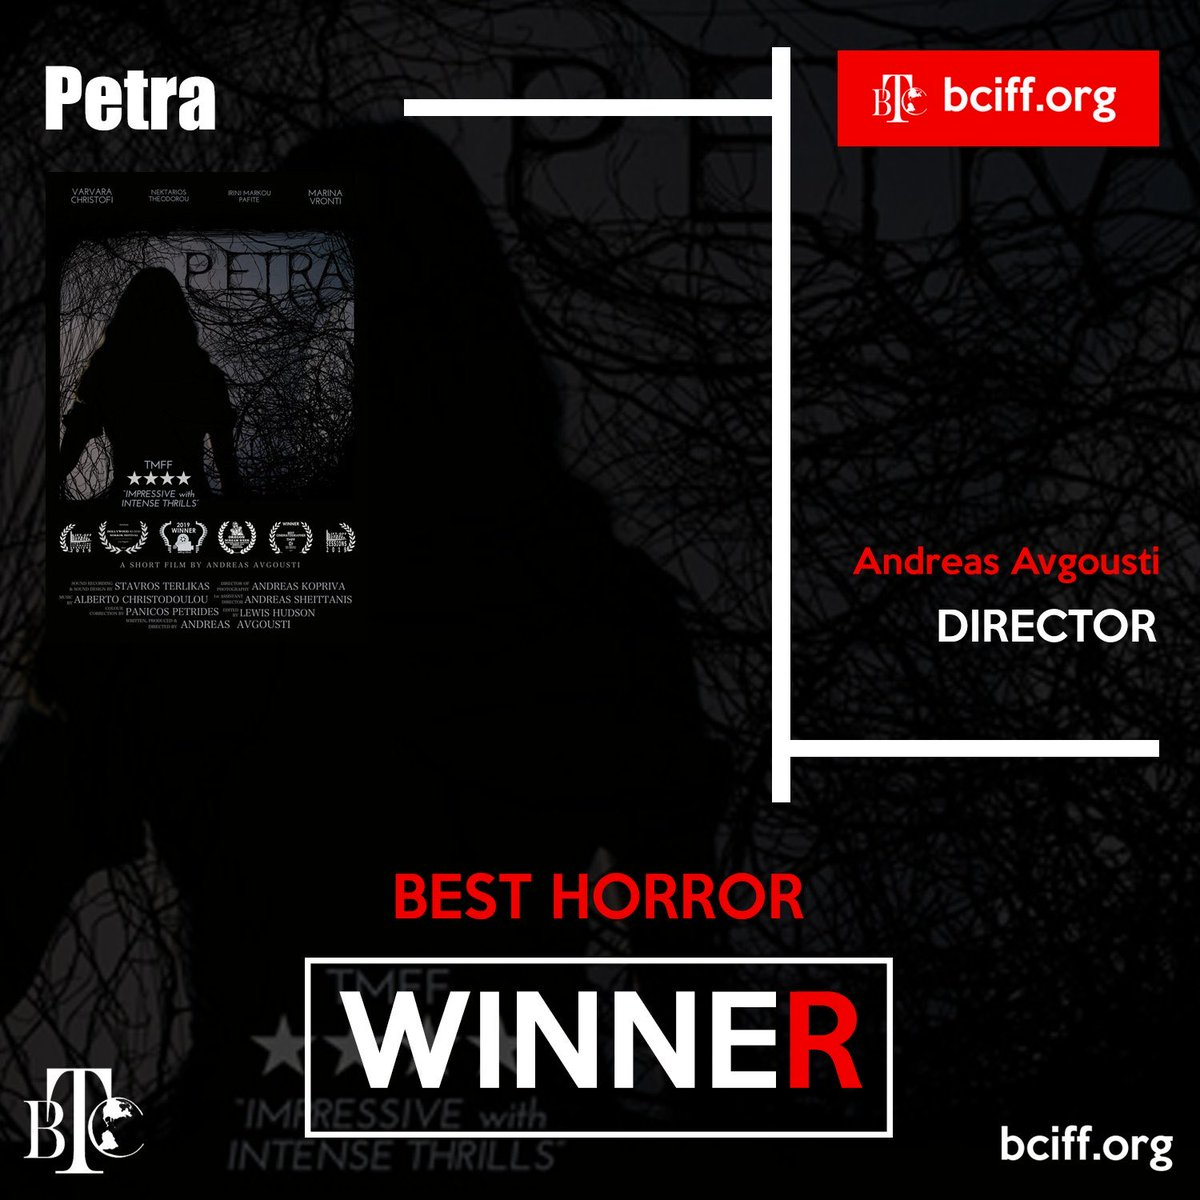 Thank you @BCIFF2020 for the Best Horror Award for @PetraMovie! #Horror #Petra #BCIFF #indie #promotehorror https://t.co/jSKbYHtW2l